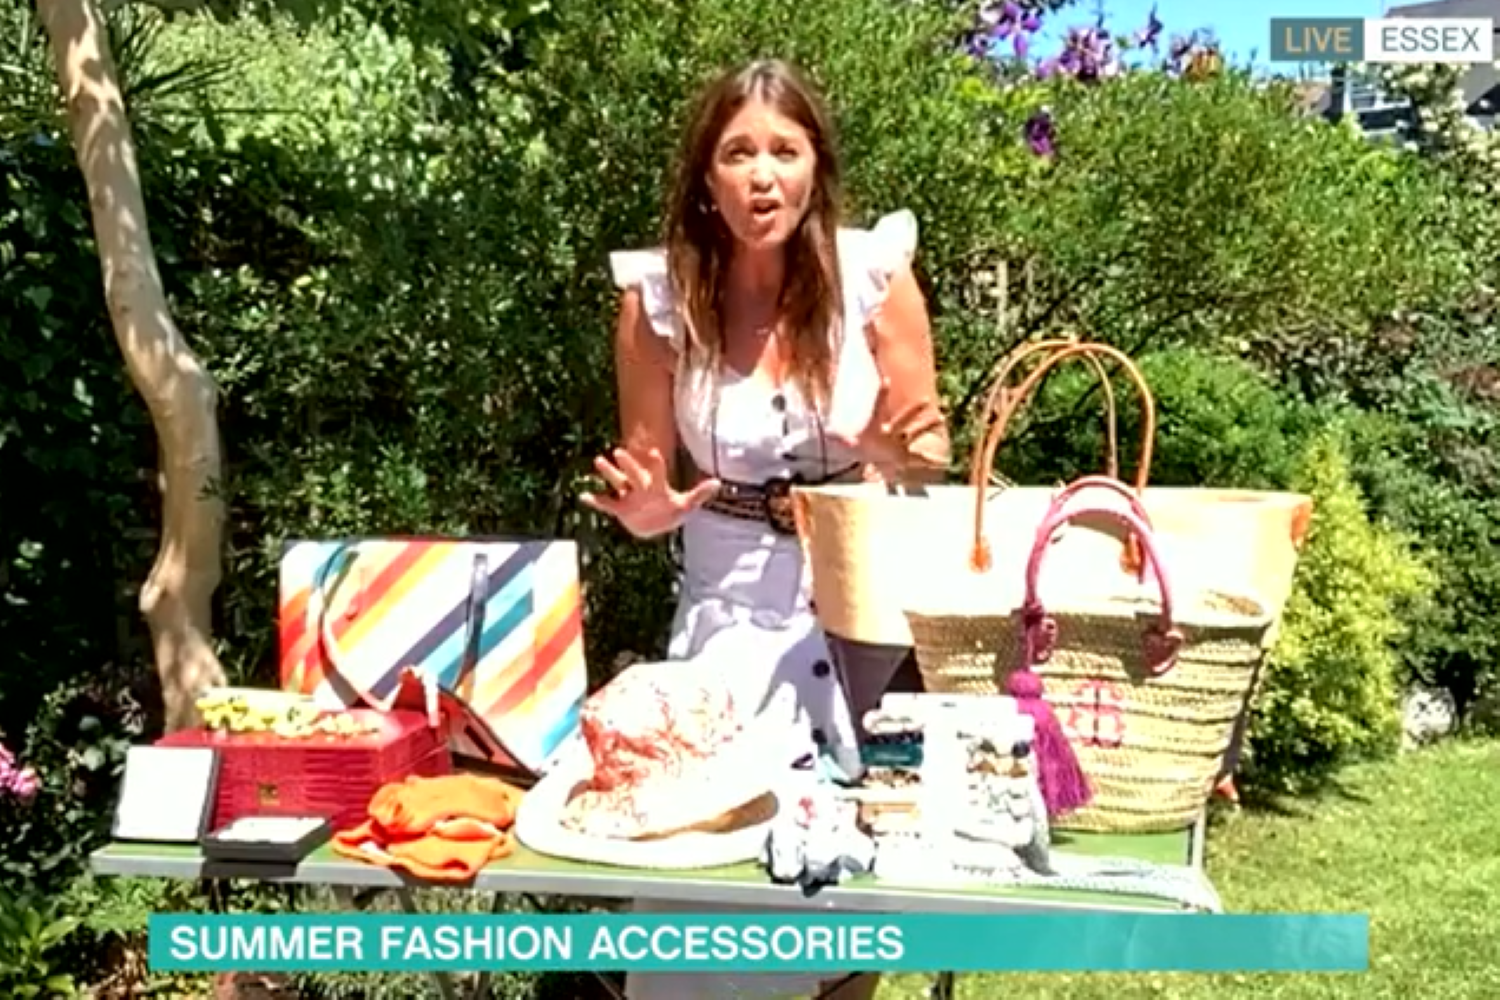 This Morning fans unhappy with prices during show's fashion segment